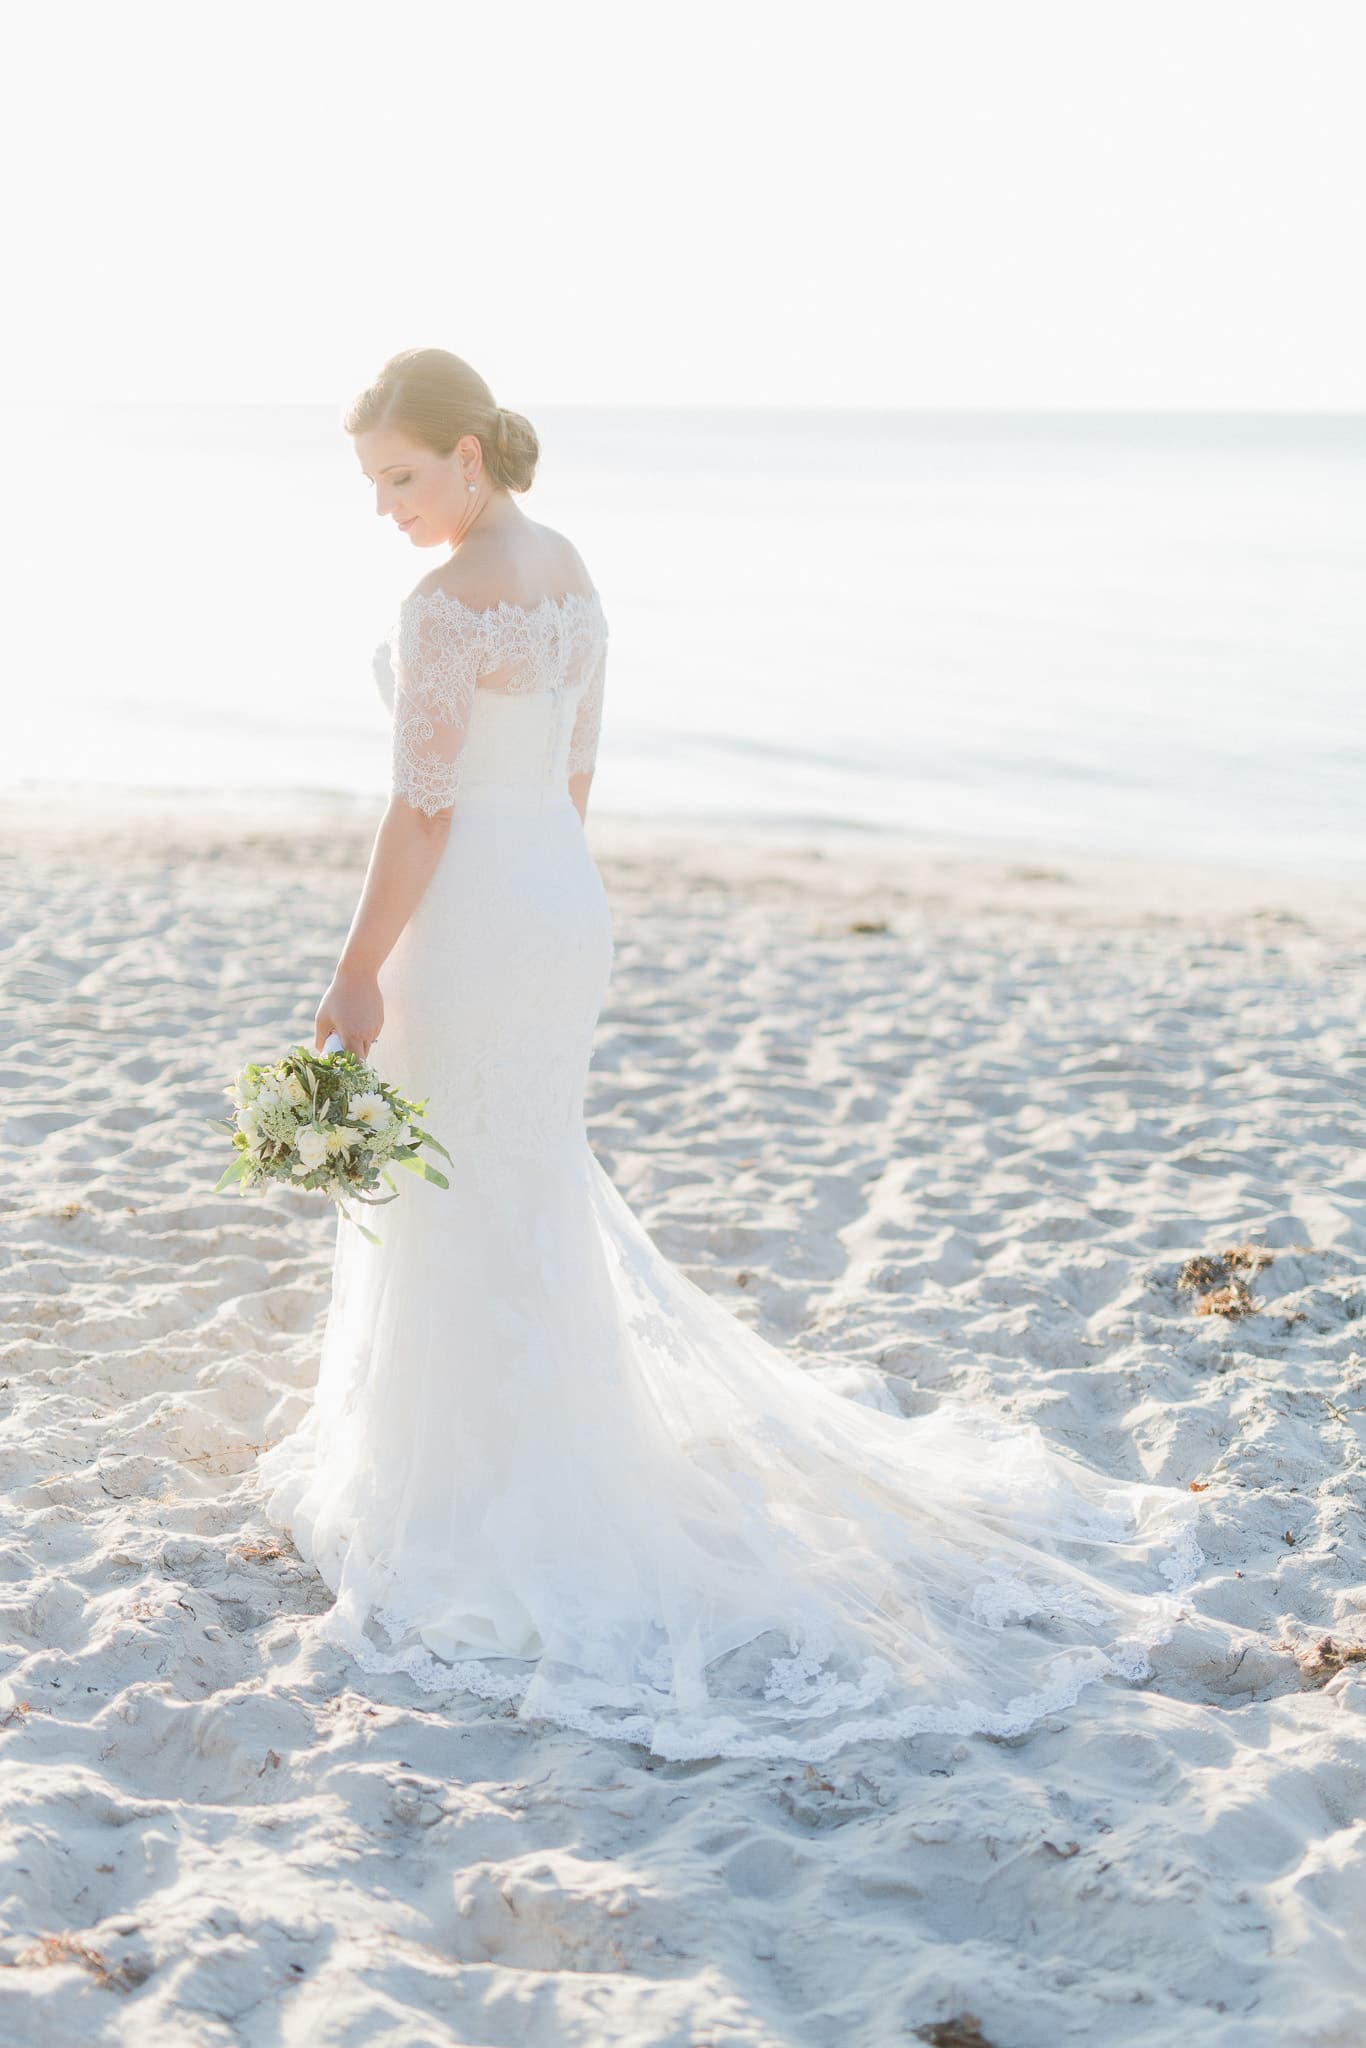 After Wedding Shooting Ostsee 15